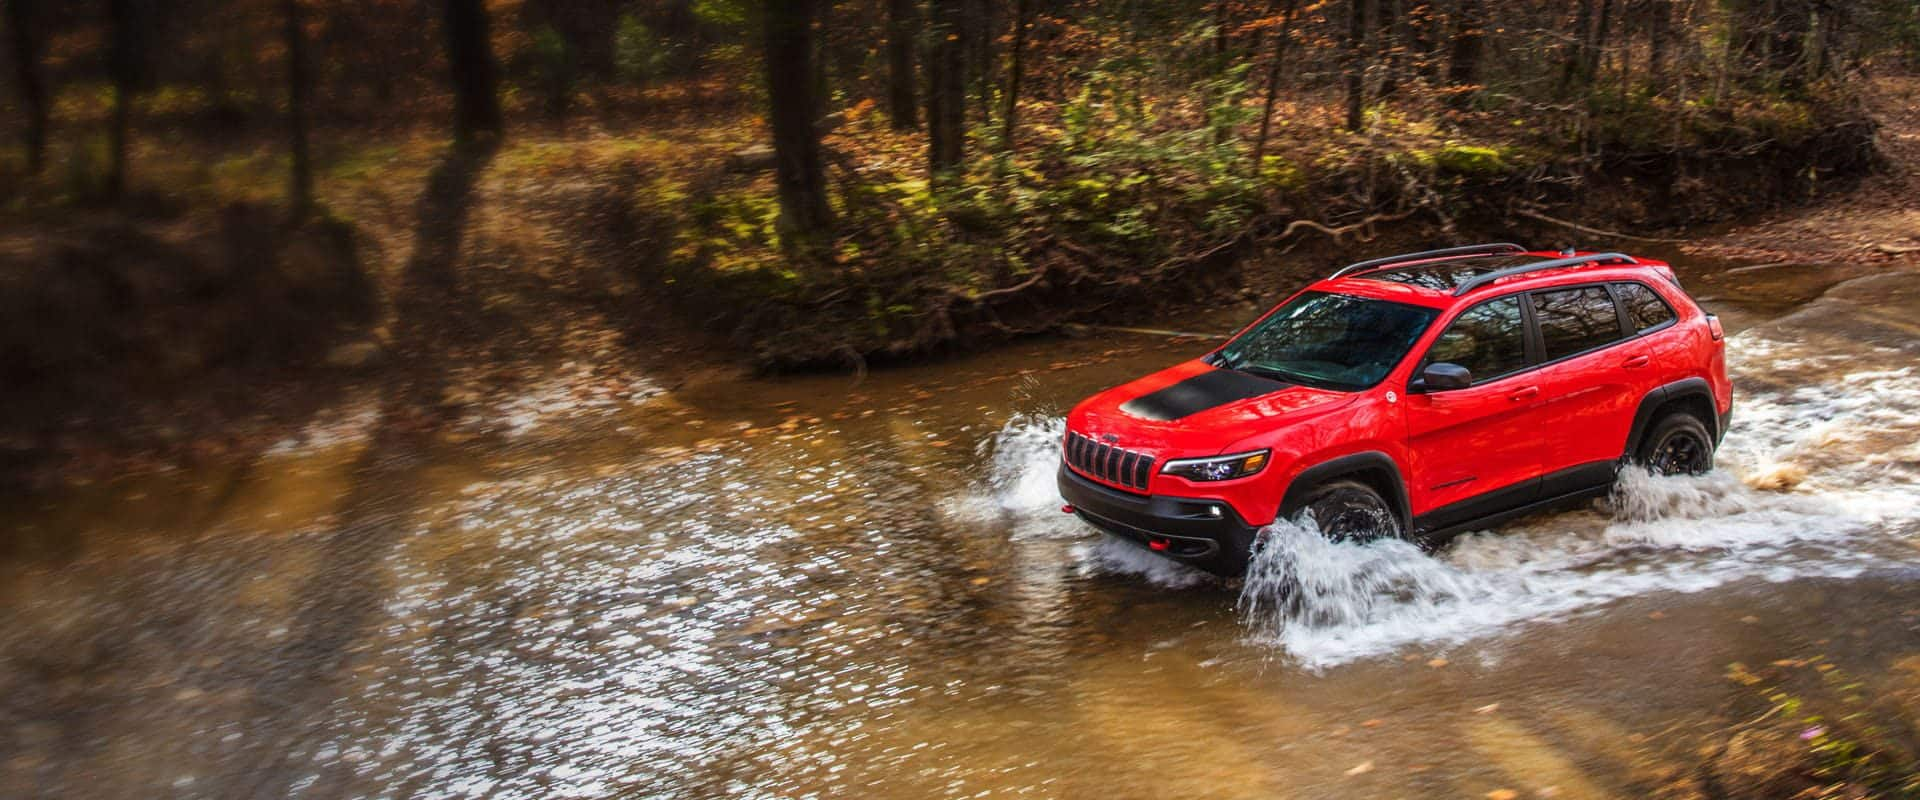 hight resolution of 2019 jeep cherokee trailhawk capability hero